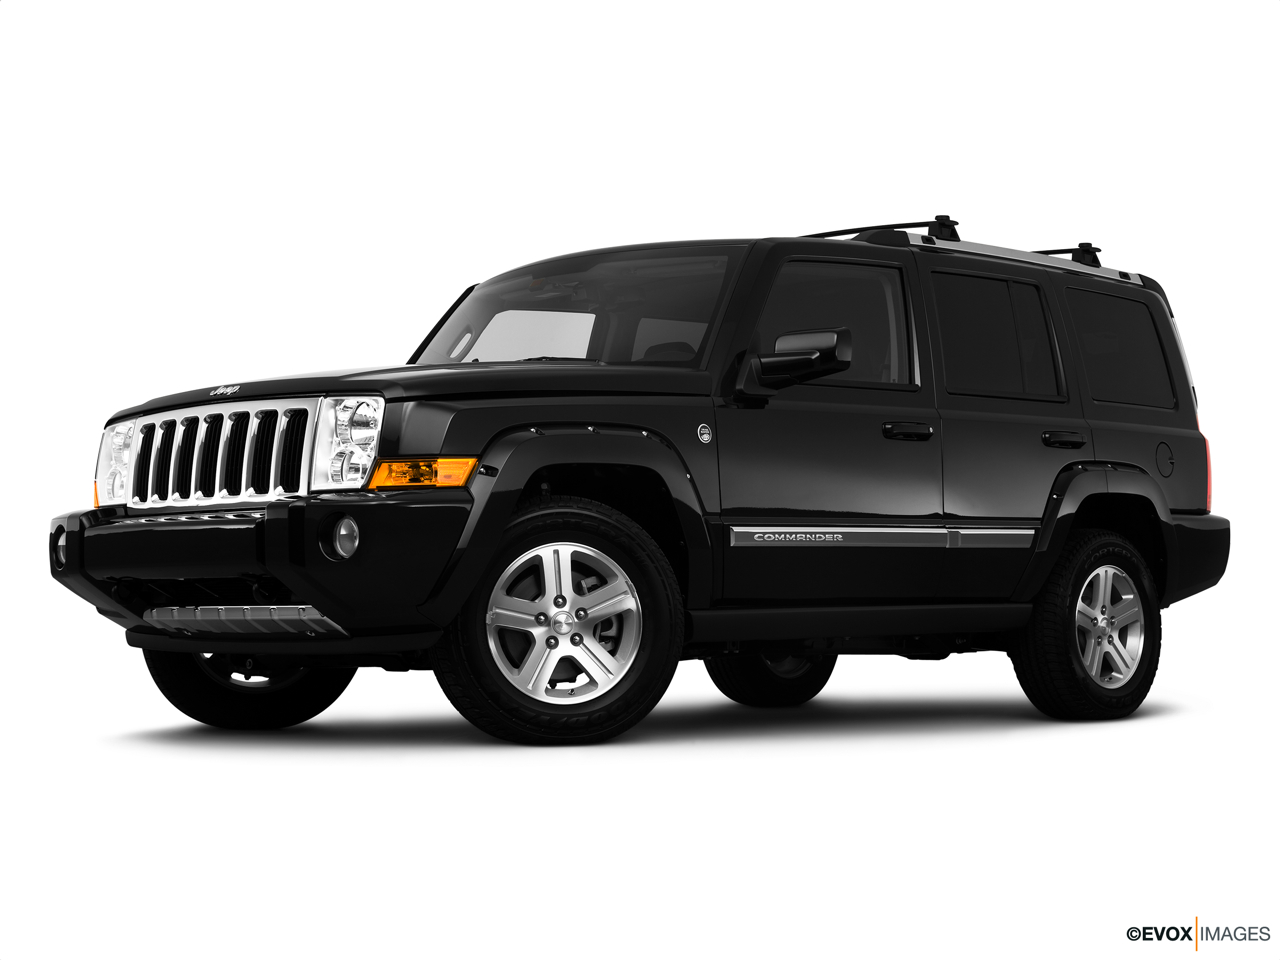 2010 Jeep Commander Limited Low/wide front 5/8.